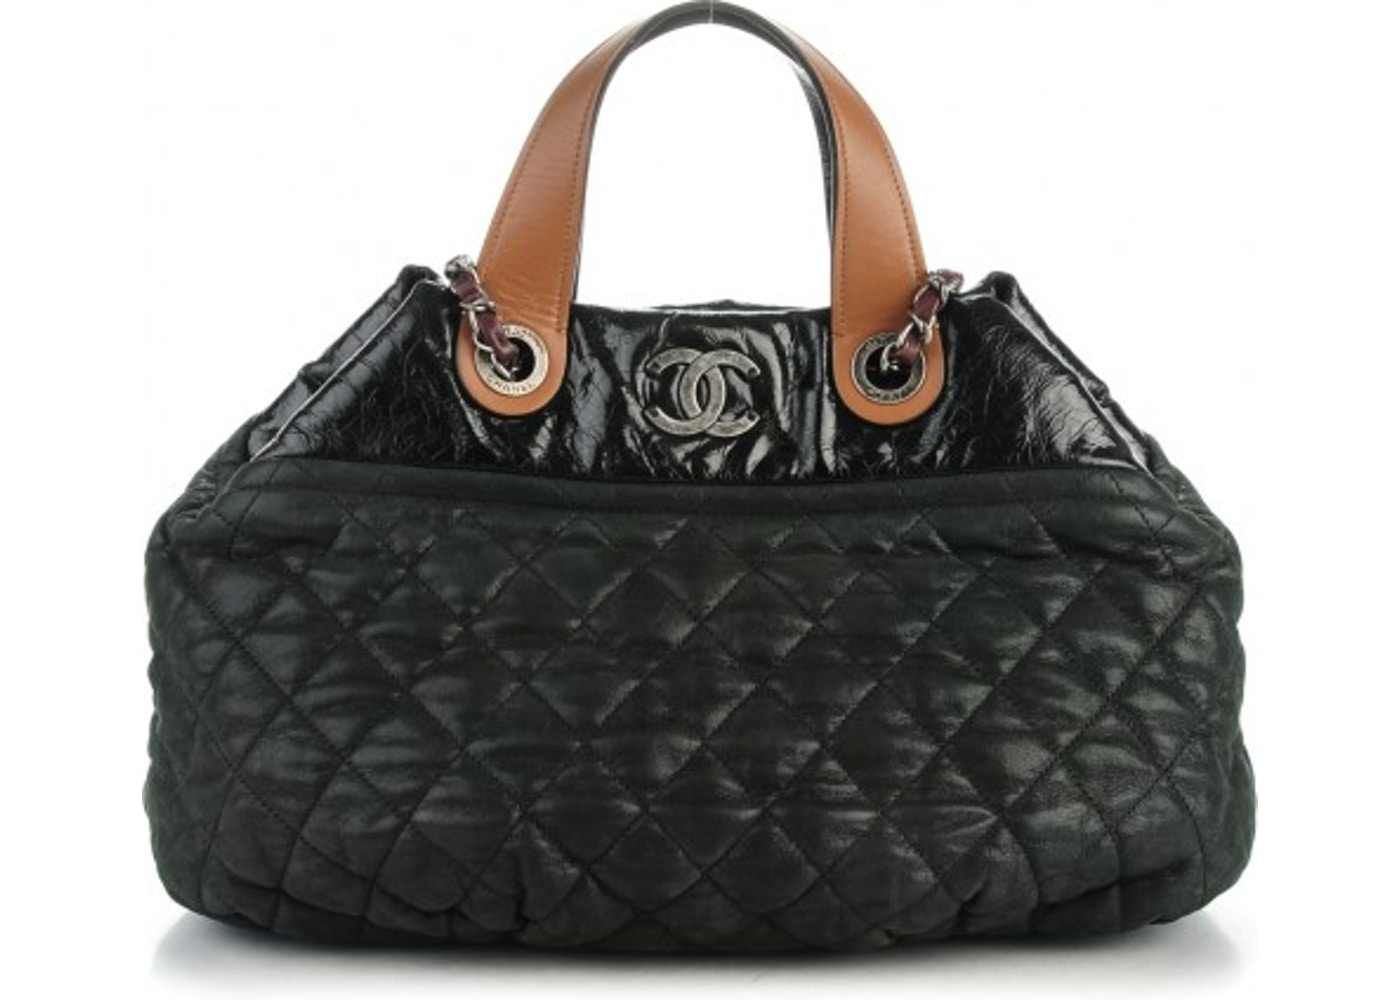 601d1eb63376 Chanel Tote In the Mix Quilted Iridescent Small Black Dark Green